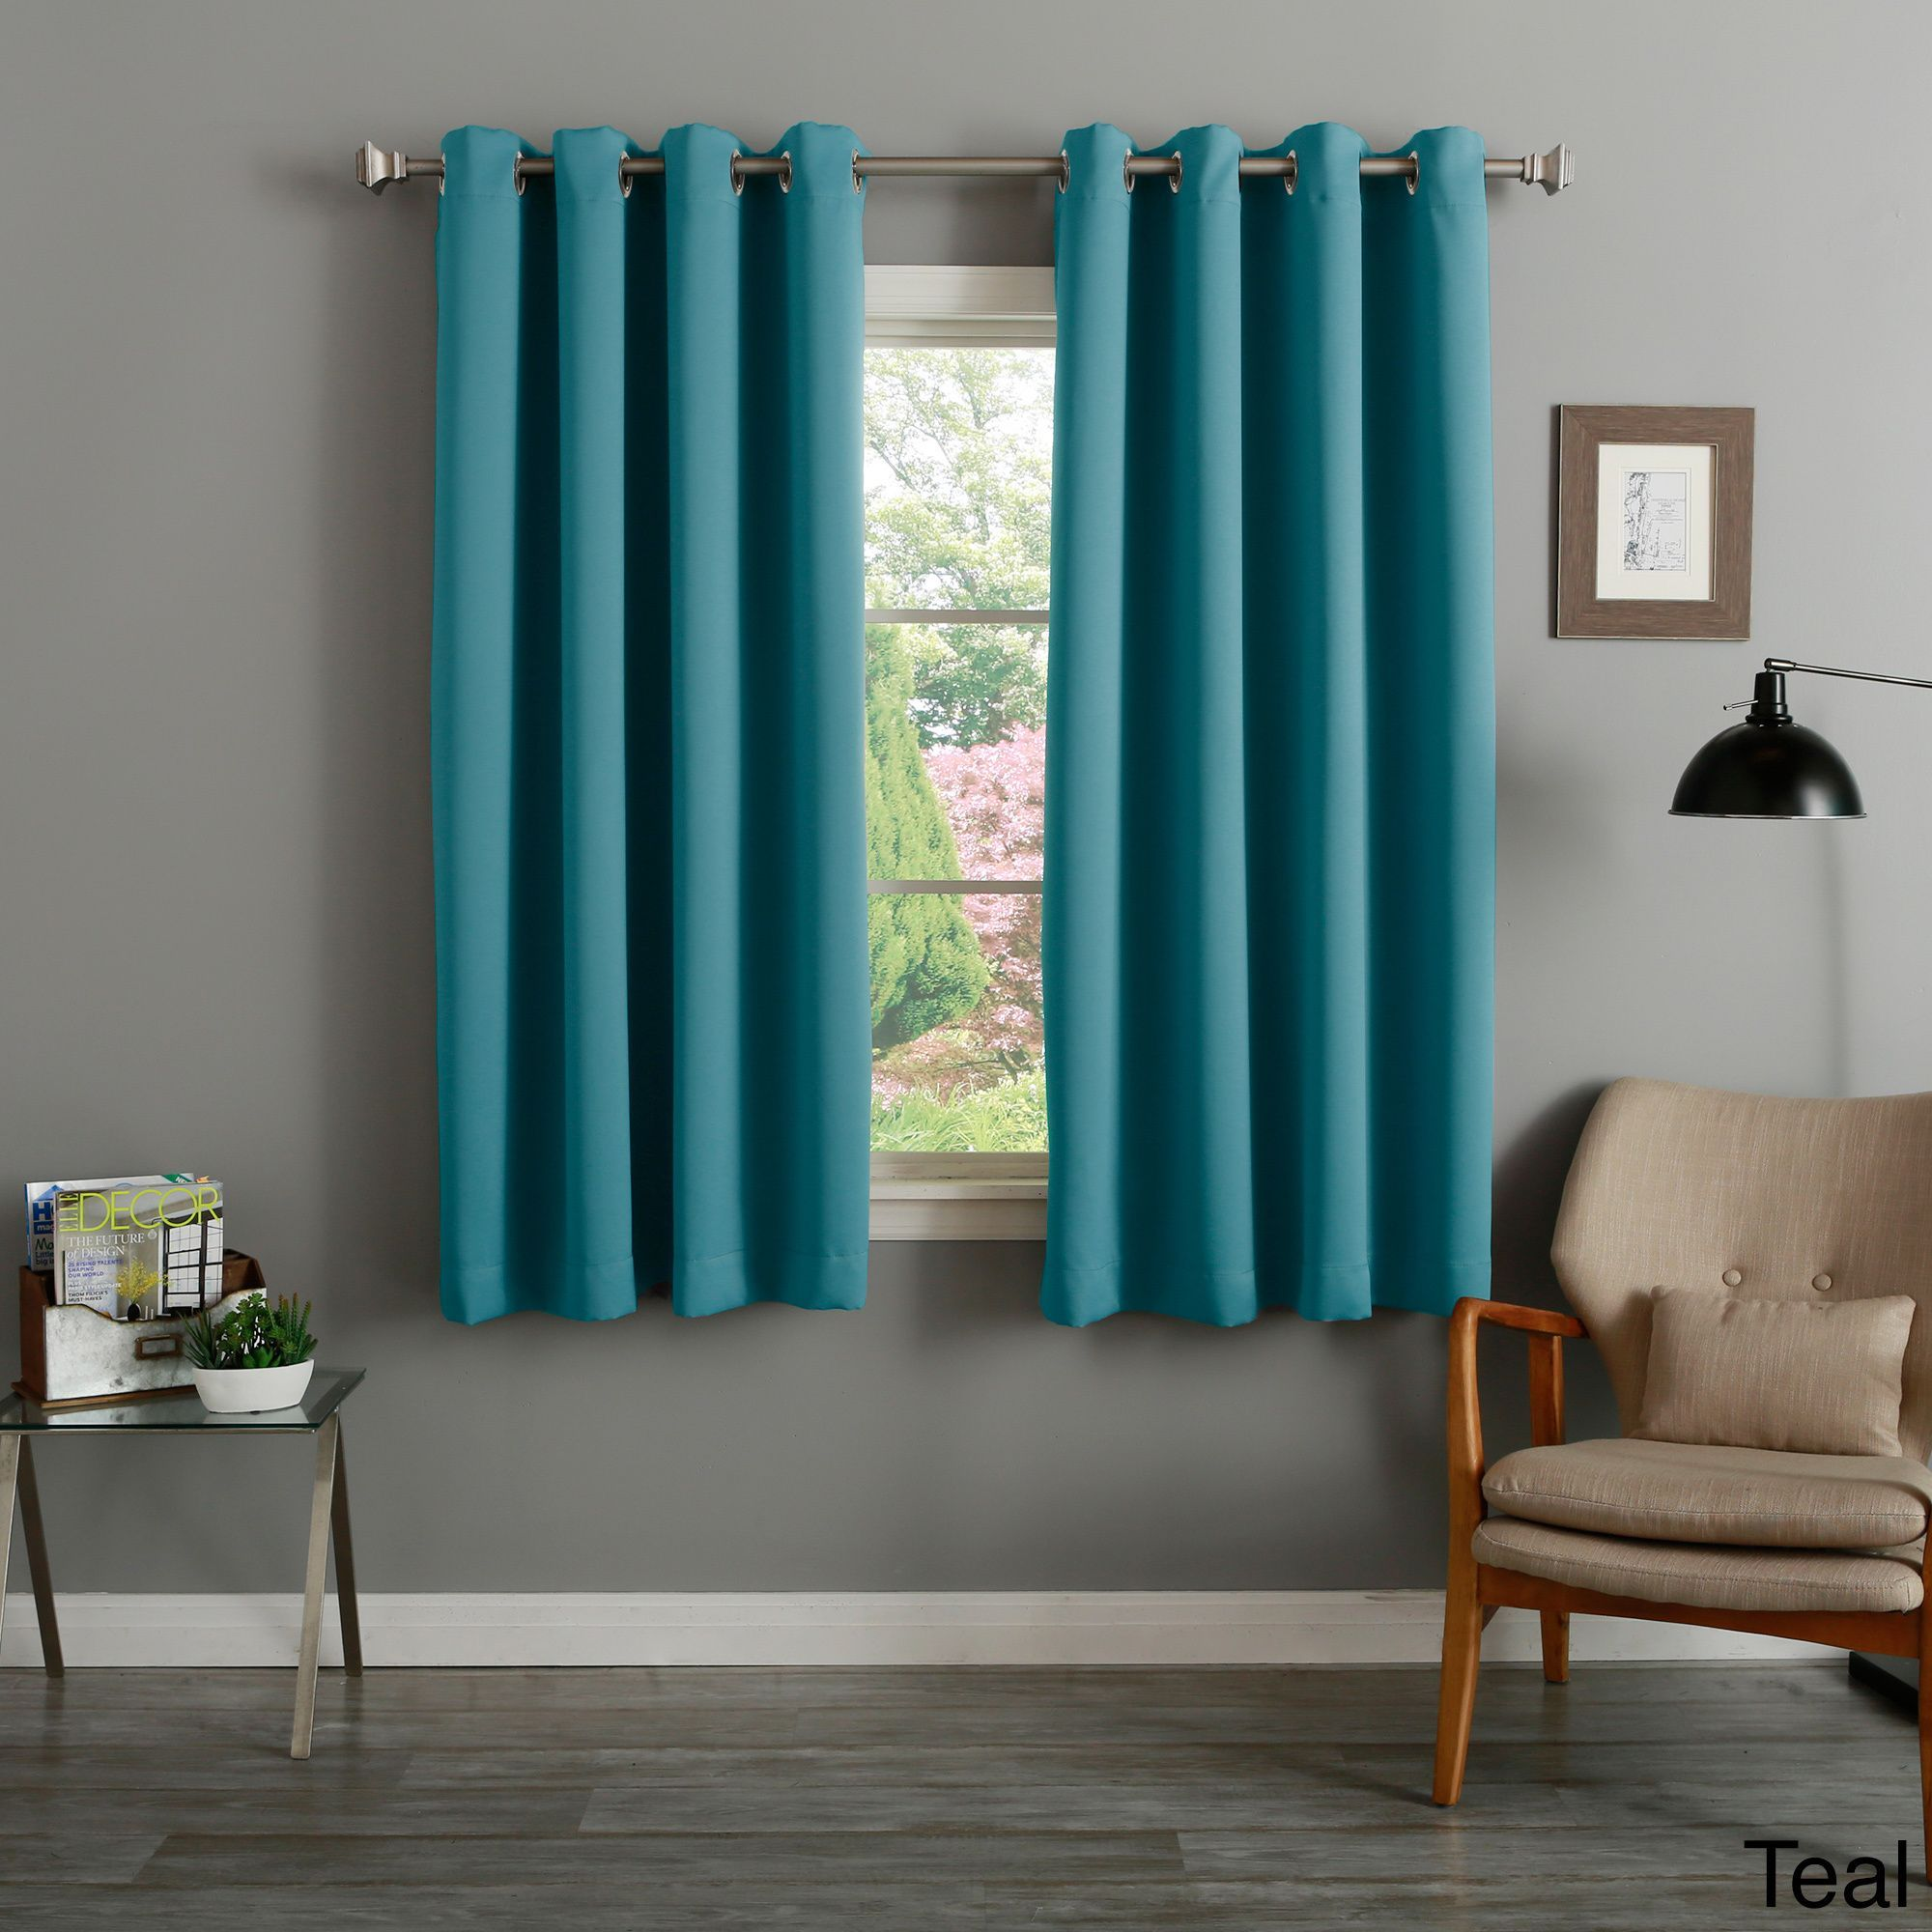 Teal Silver Curtains Aurora Home Silver Grommet Top 63 Inch Blackout Curtain Pair 52